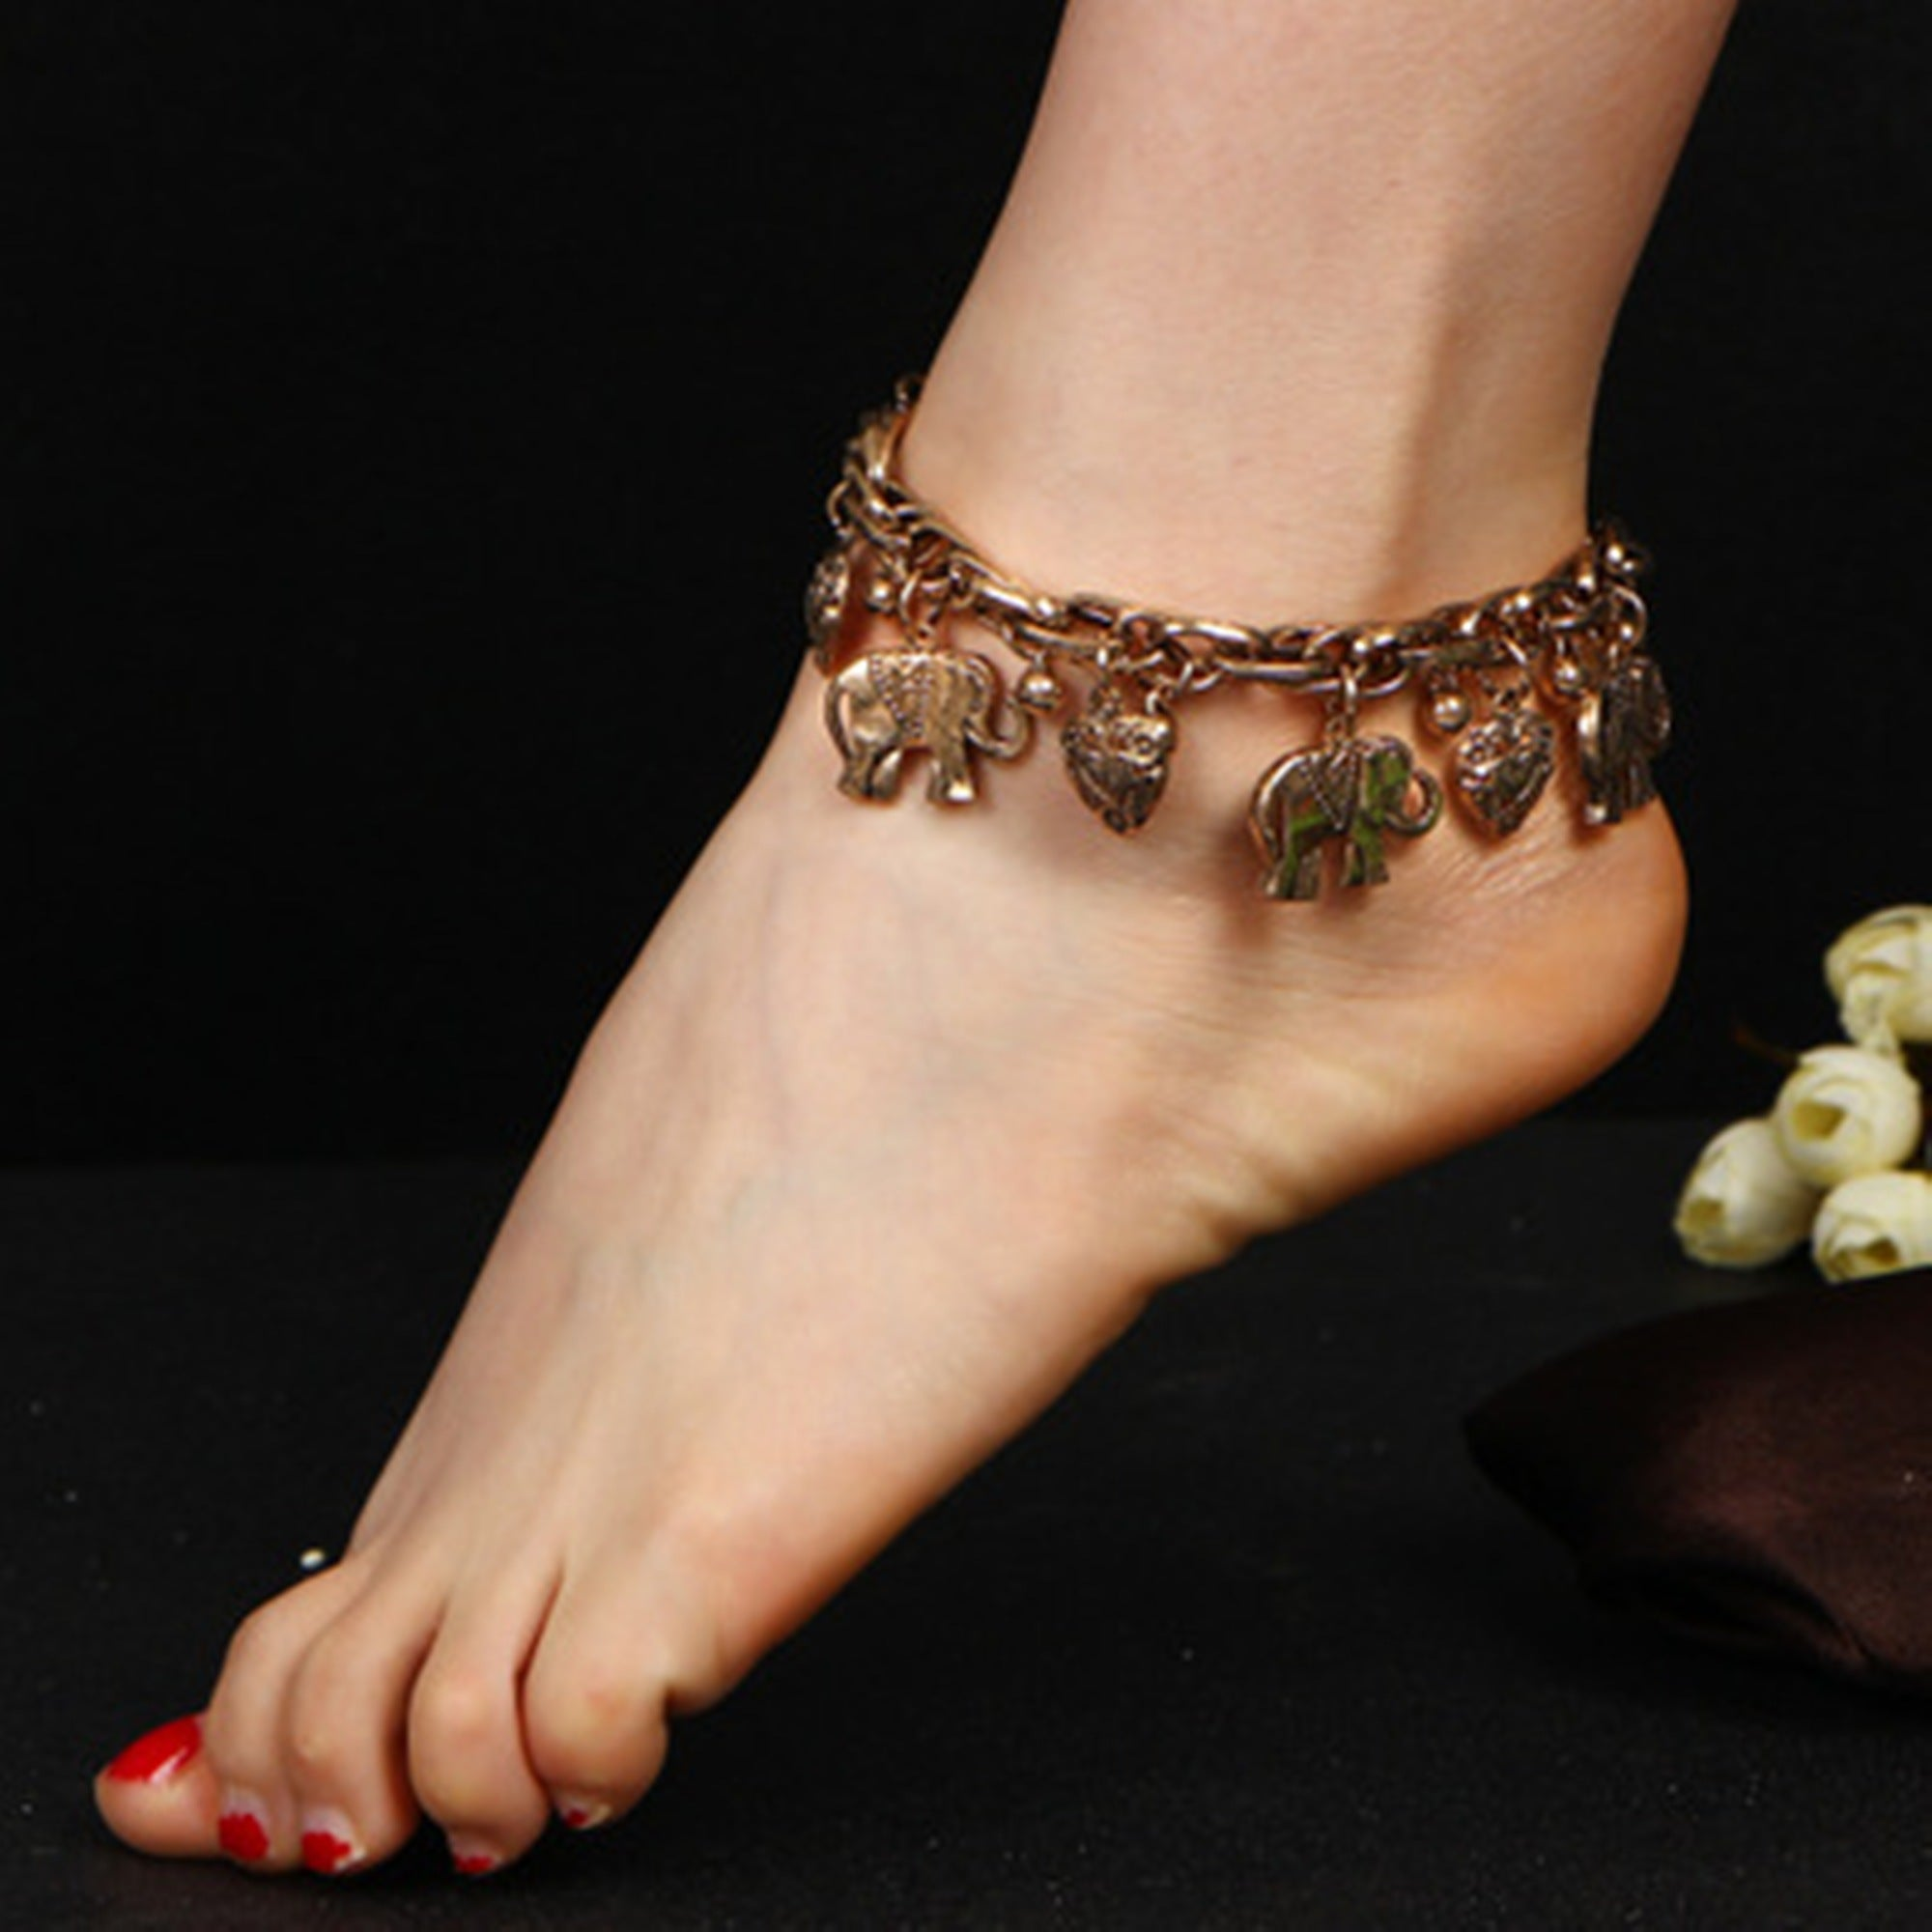 two puffed heart in tone com at yellow gold anklet ankle viomart bracelet